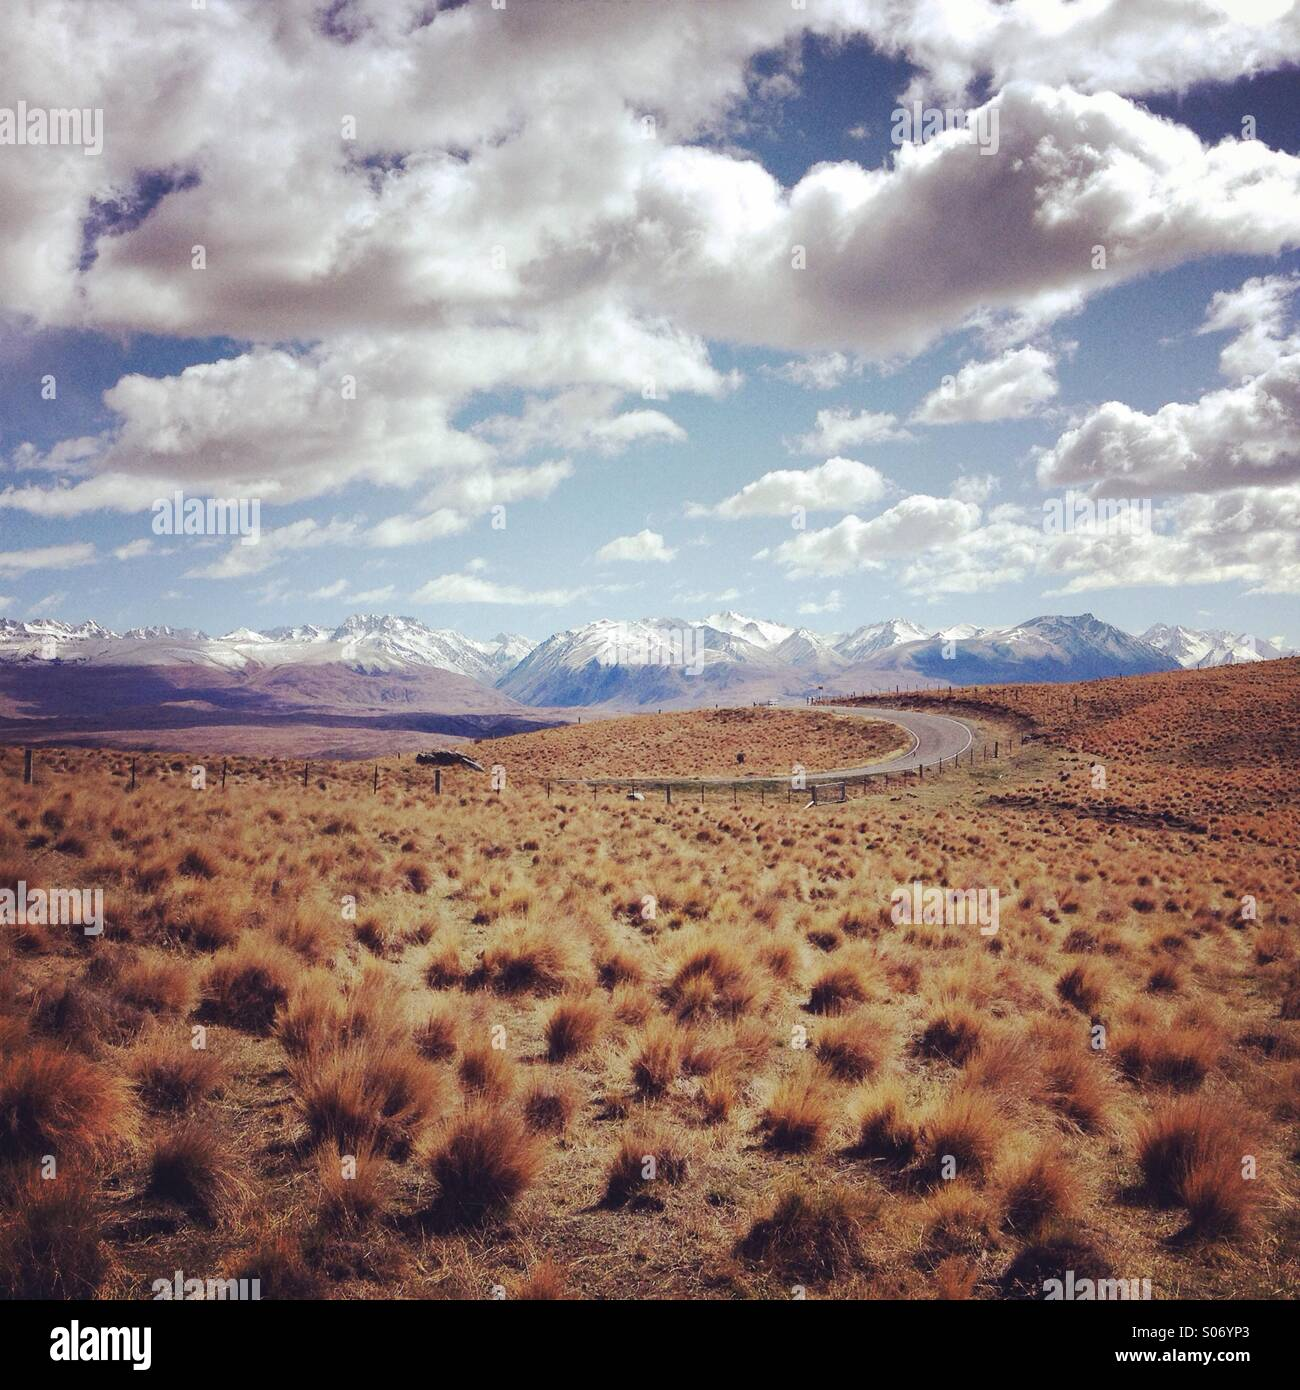 Grasslands in New Zealand with a mountain range in the background - Stock Image